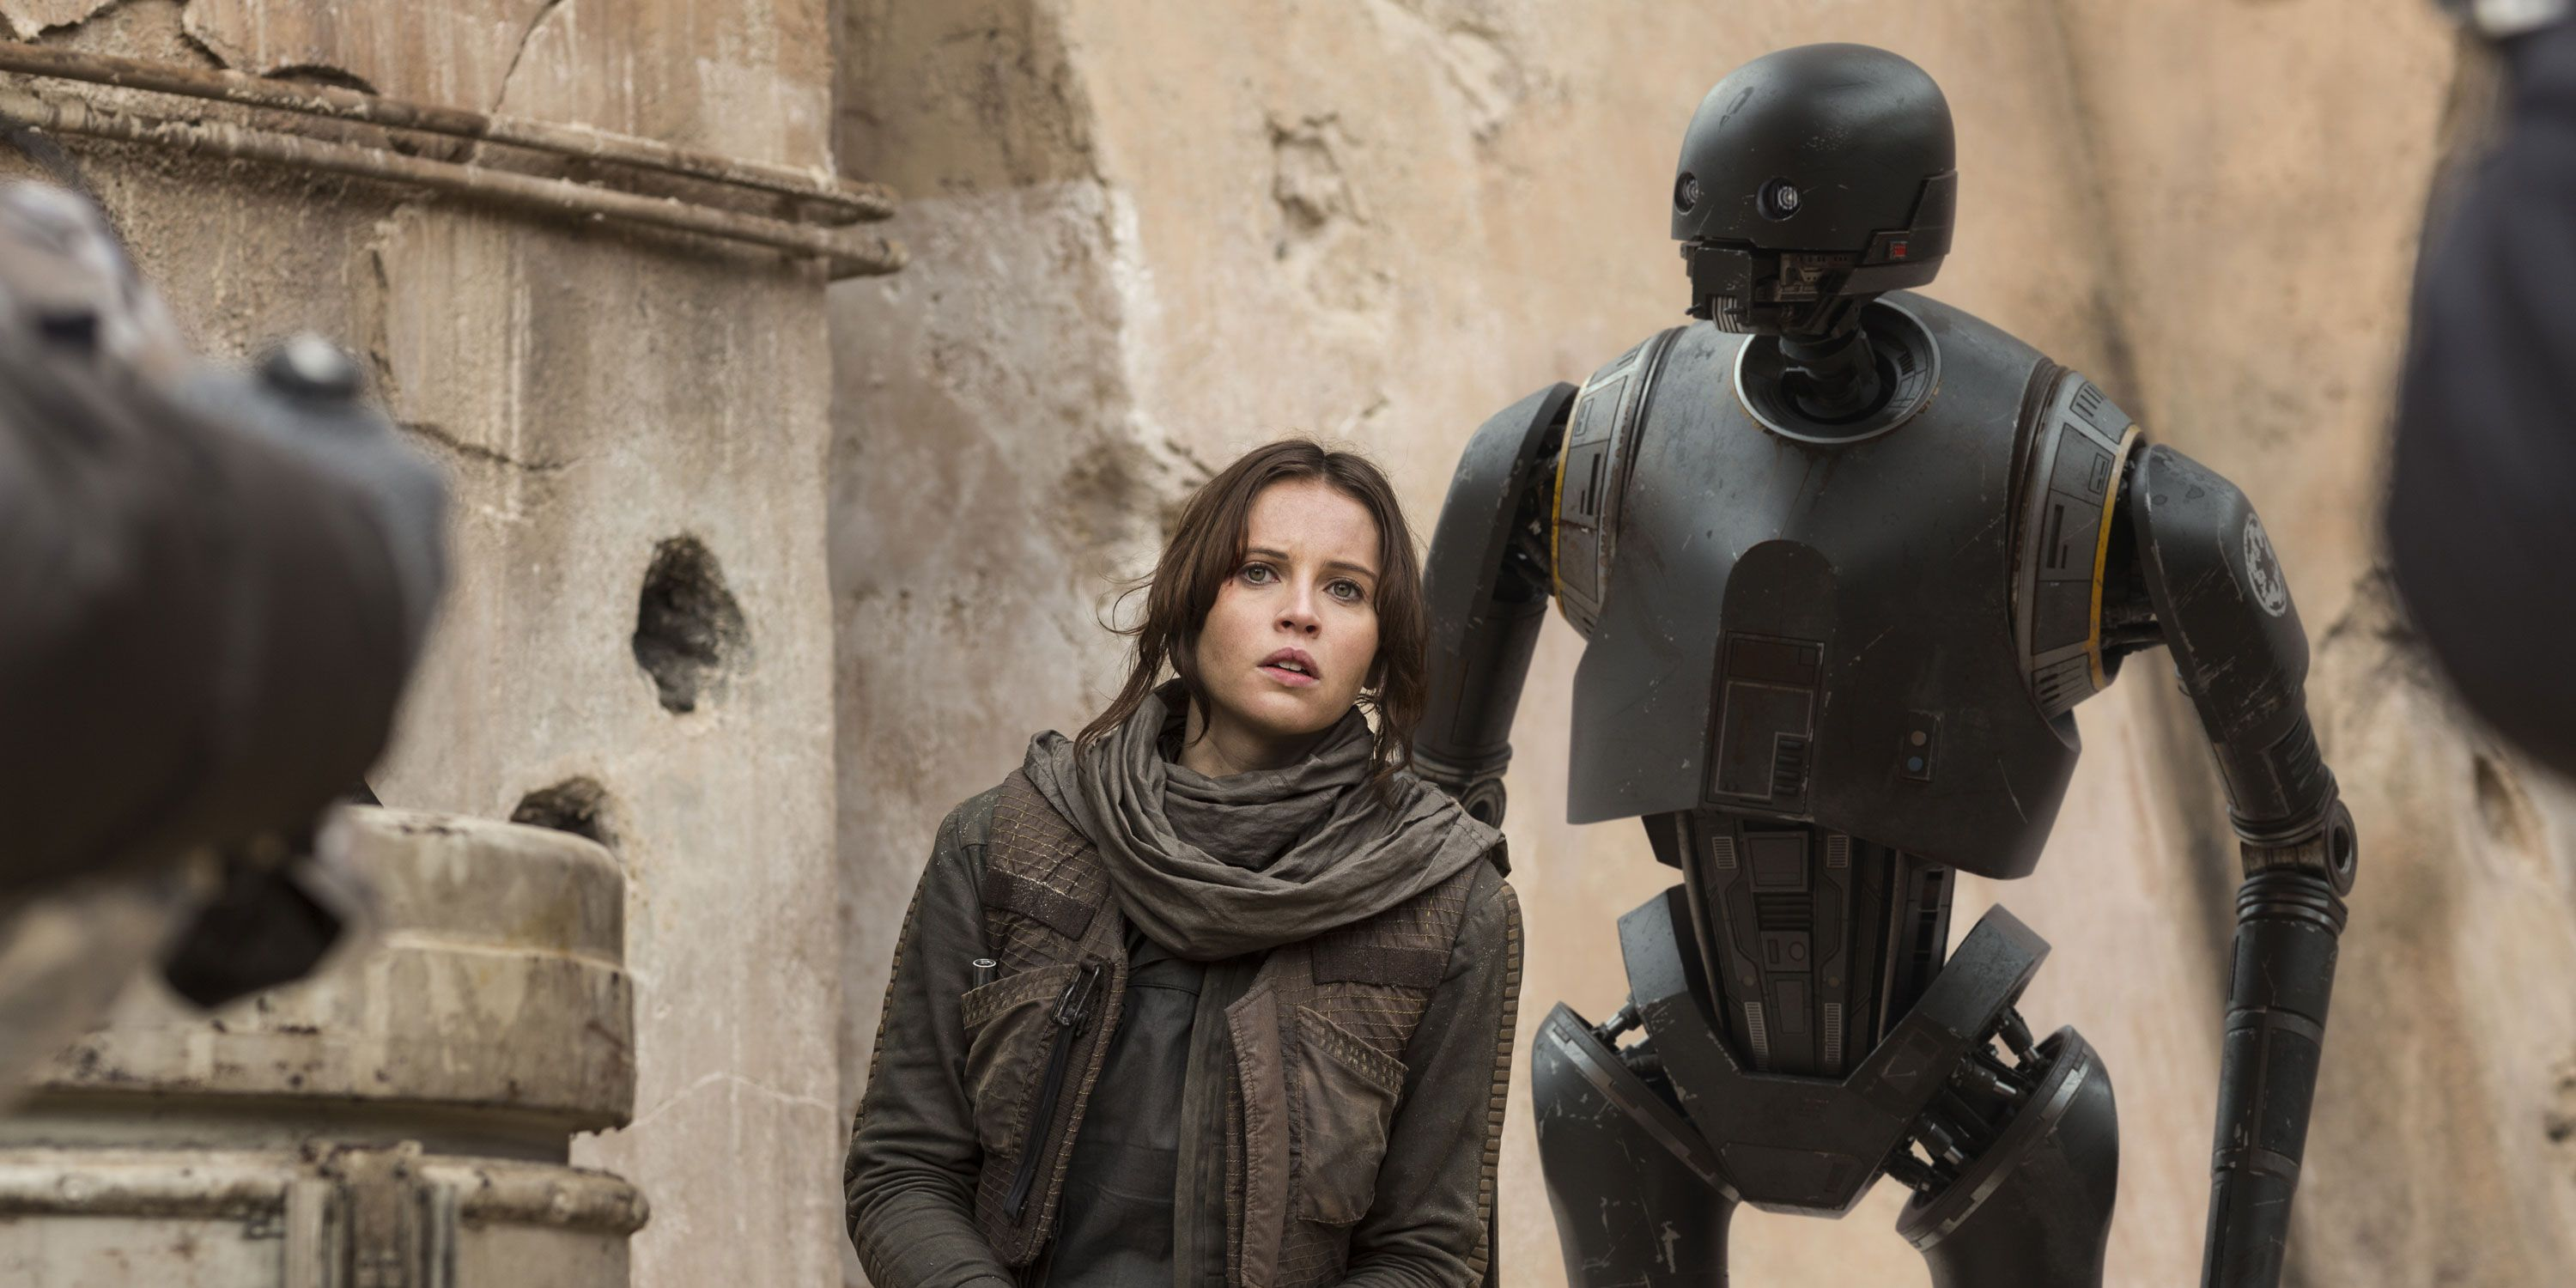 Star Wars, Rogue One, Felicity Jones as Jyn Erso, and K-2SO